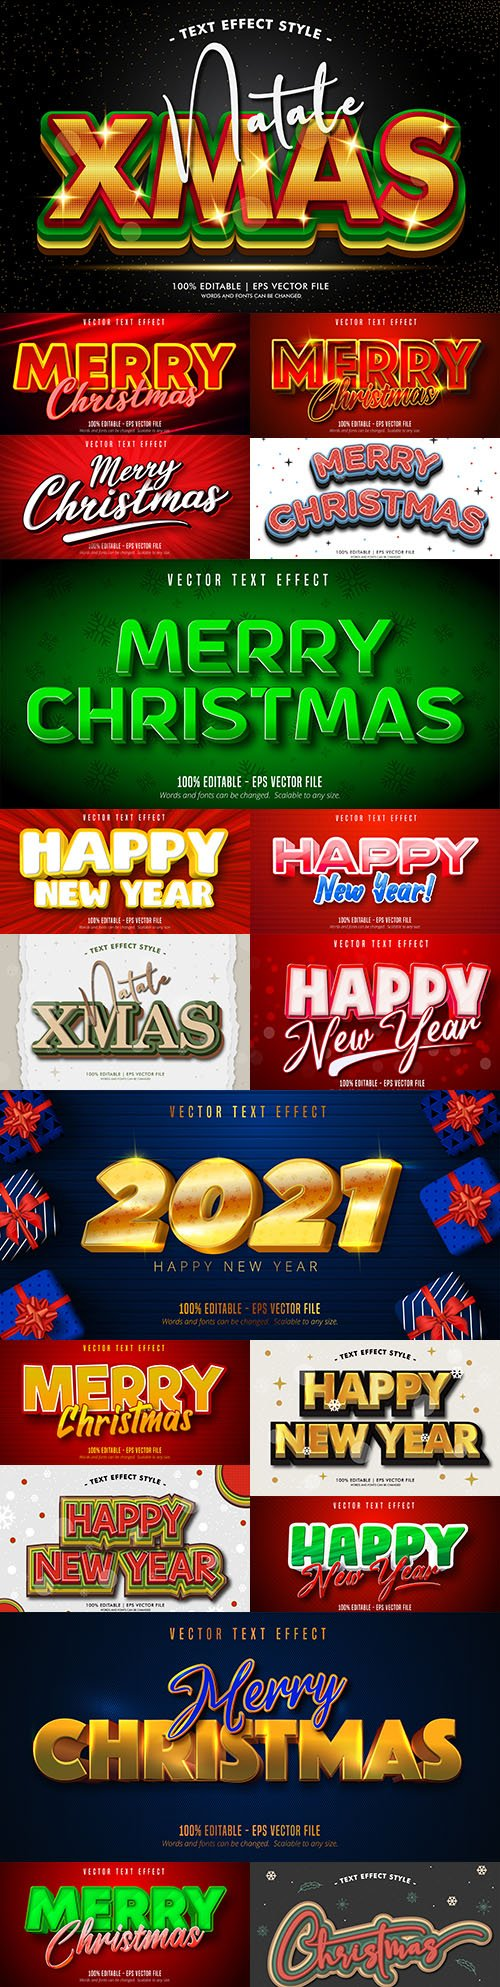 Merry Christmas editable font effect text collection 5